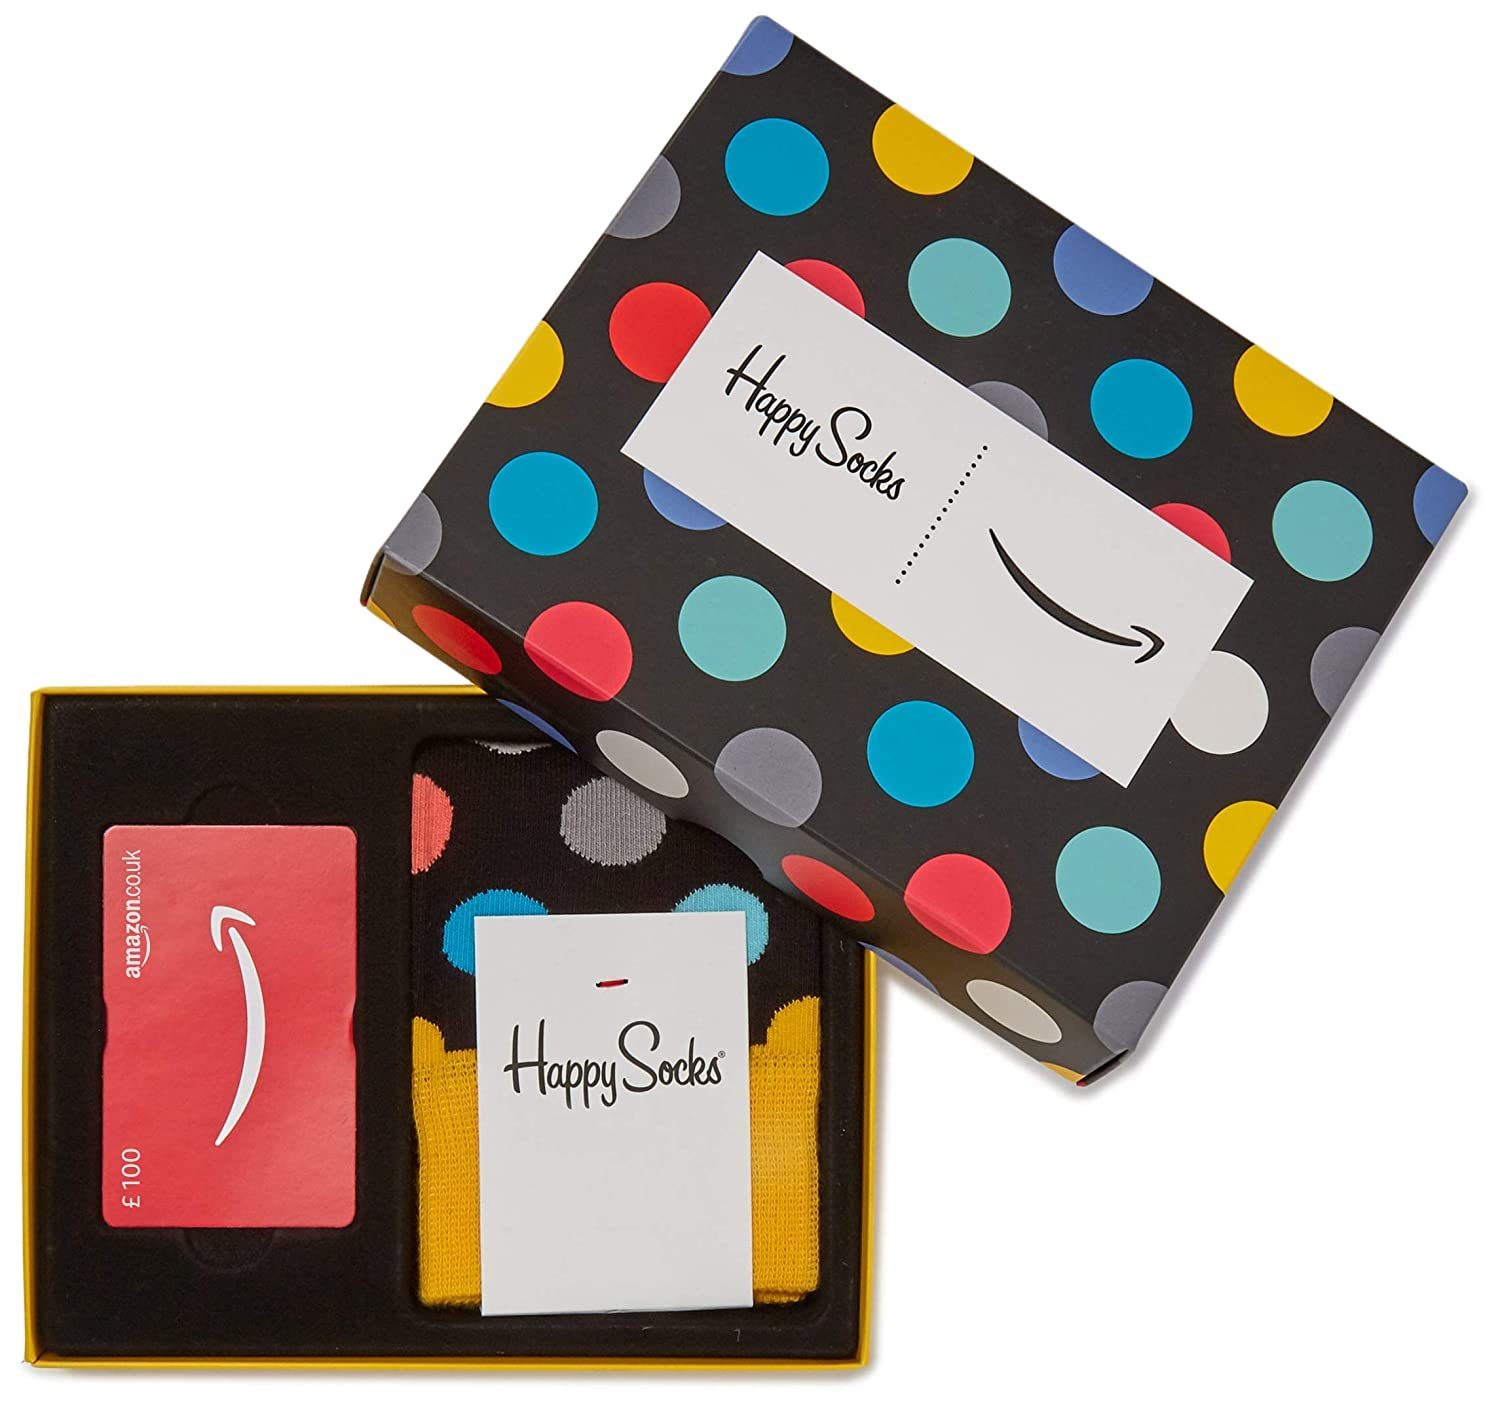 Amazon.co.uk £100 Gift Card with Happy Socks (One Size) Amazon EU S.à.r.l. Fixed